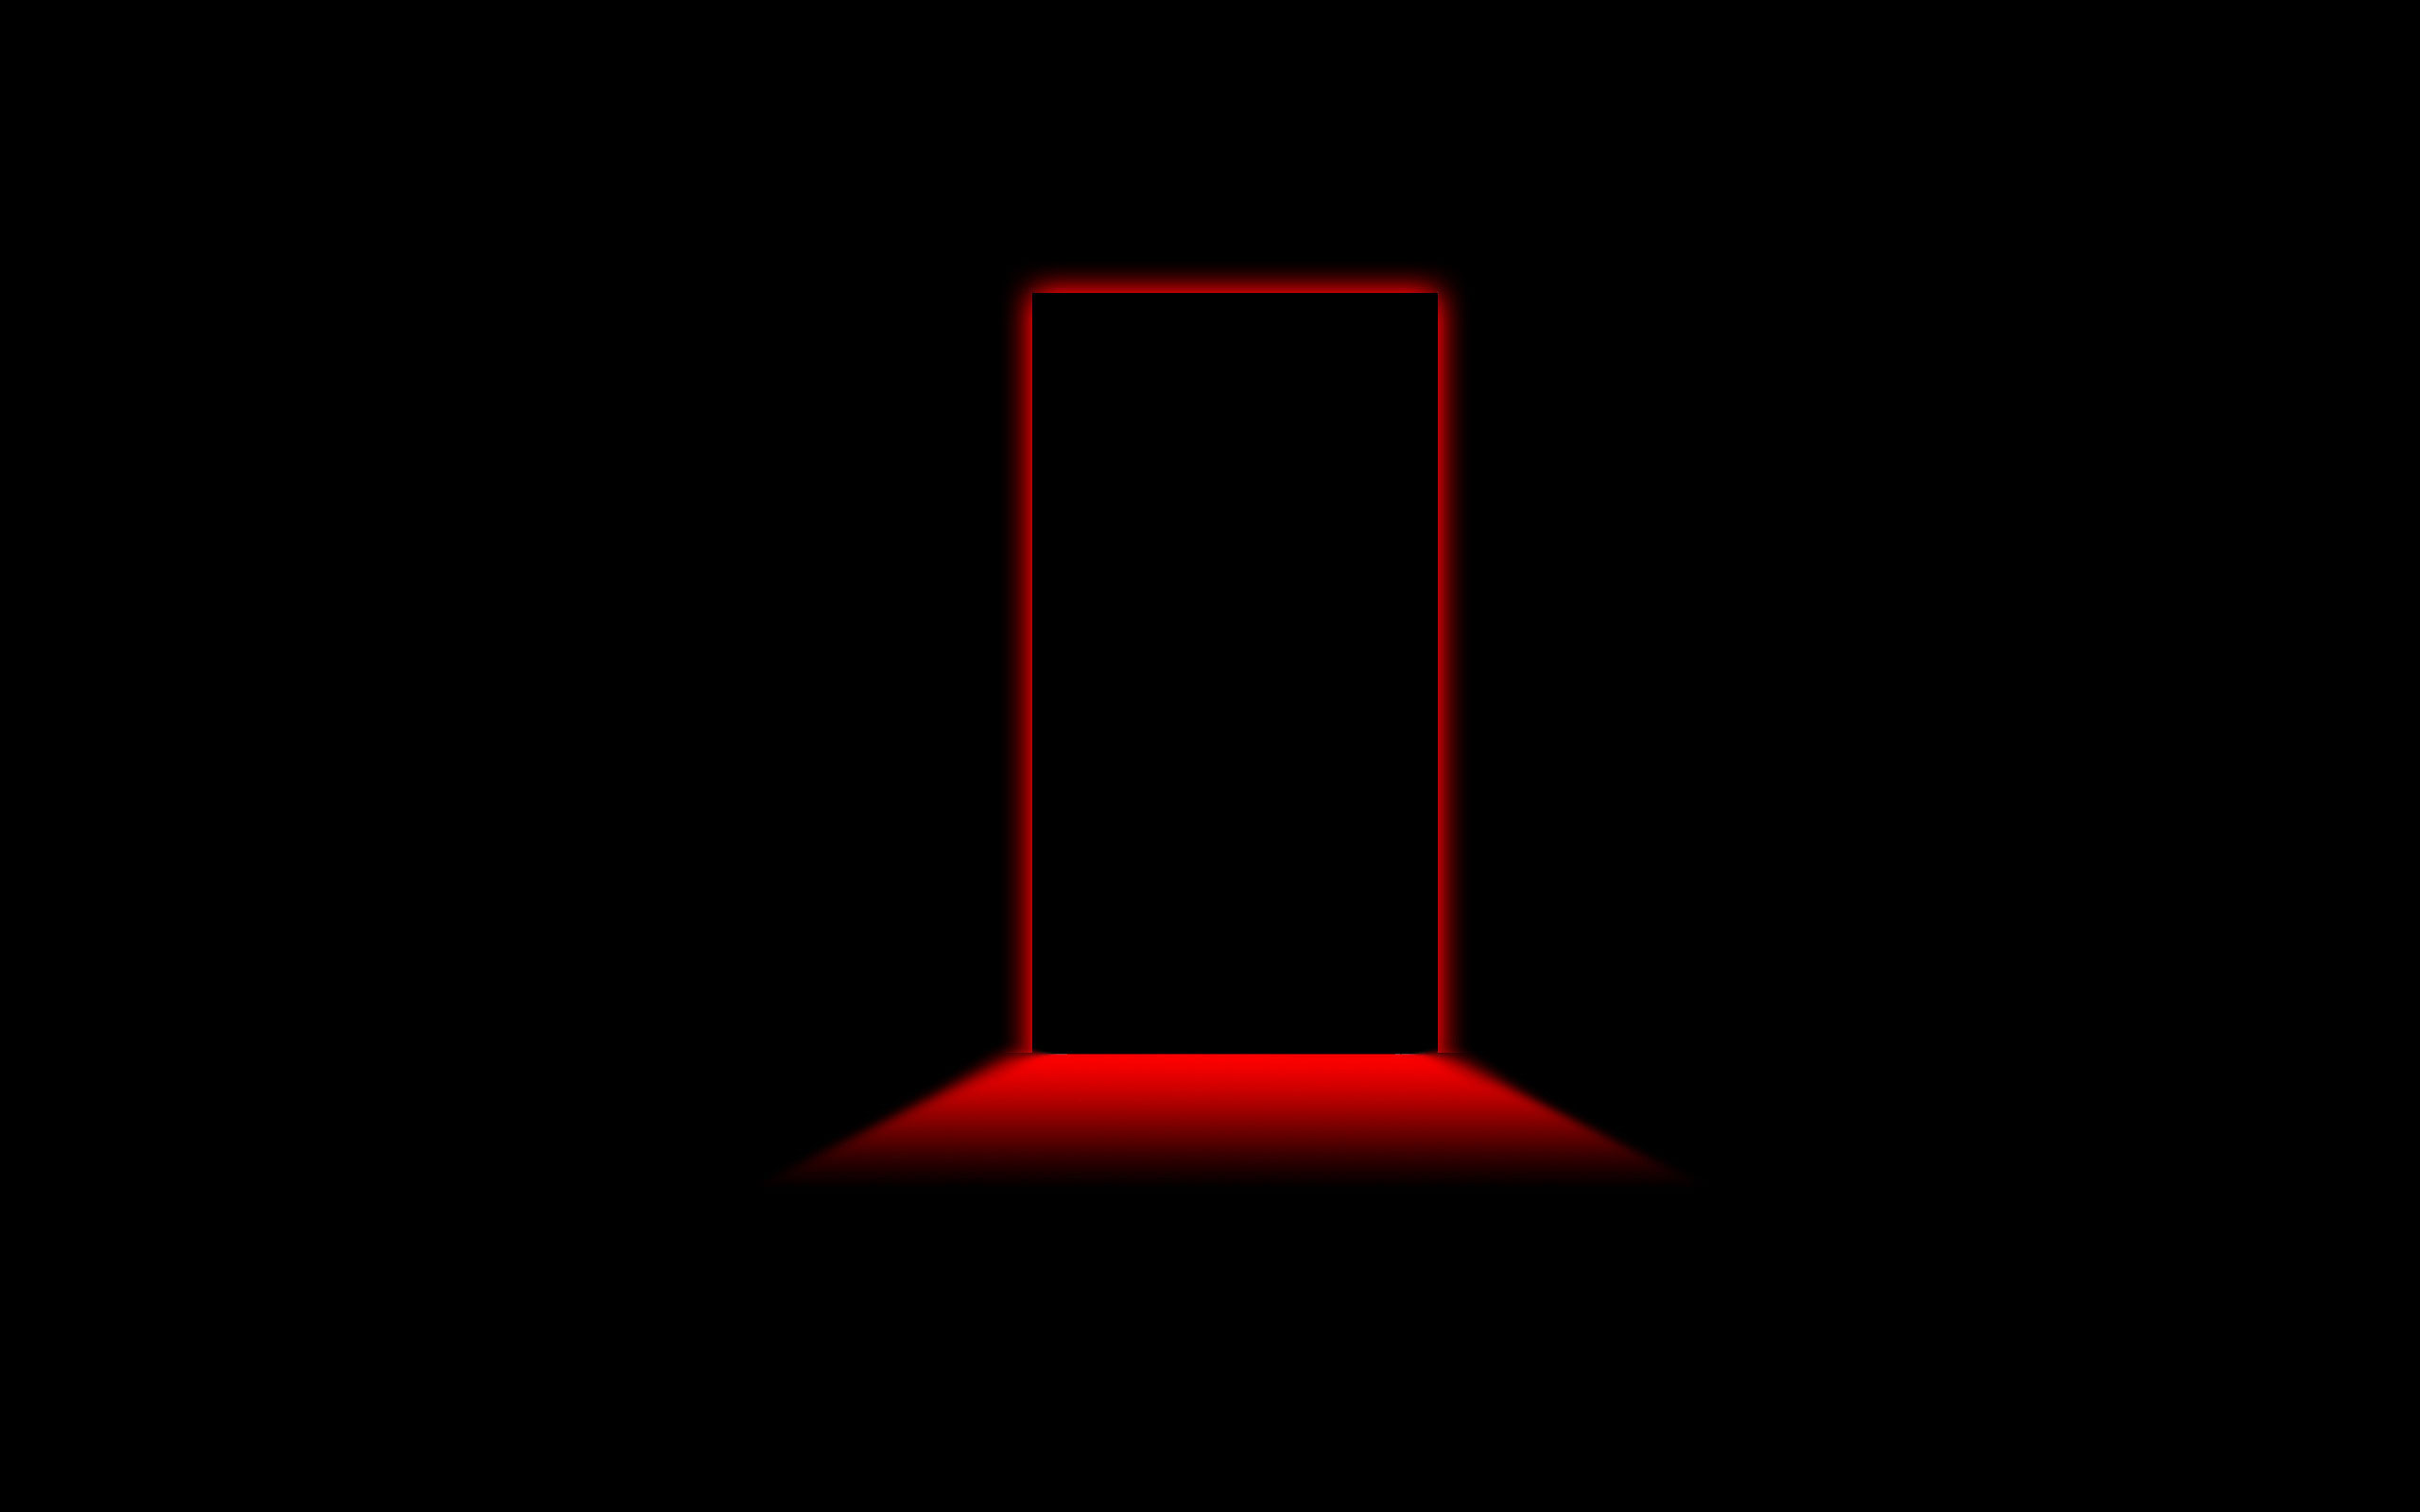 background black and red 27